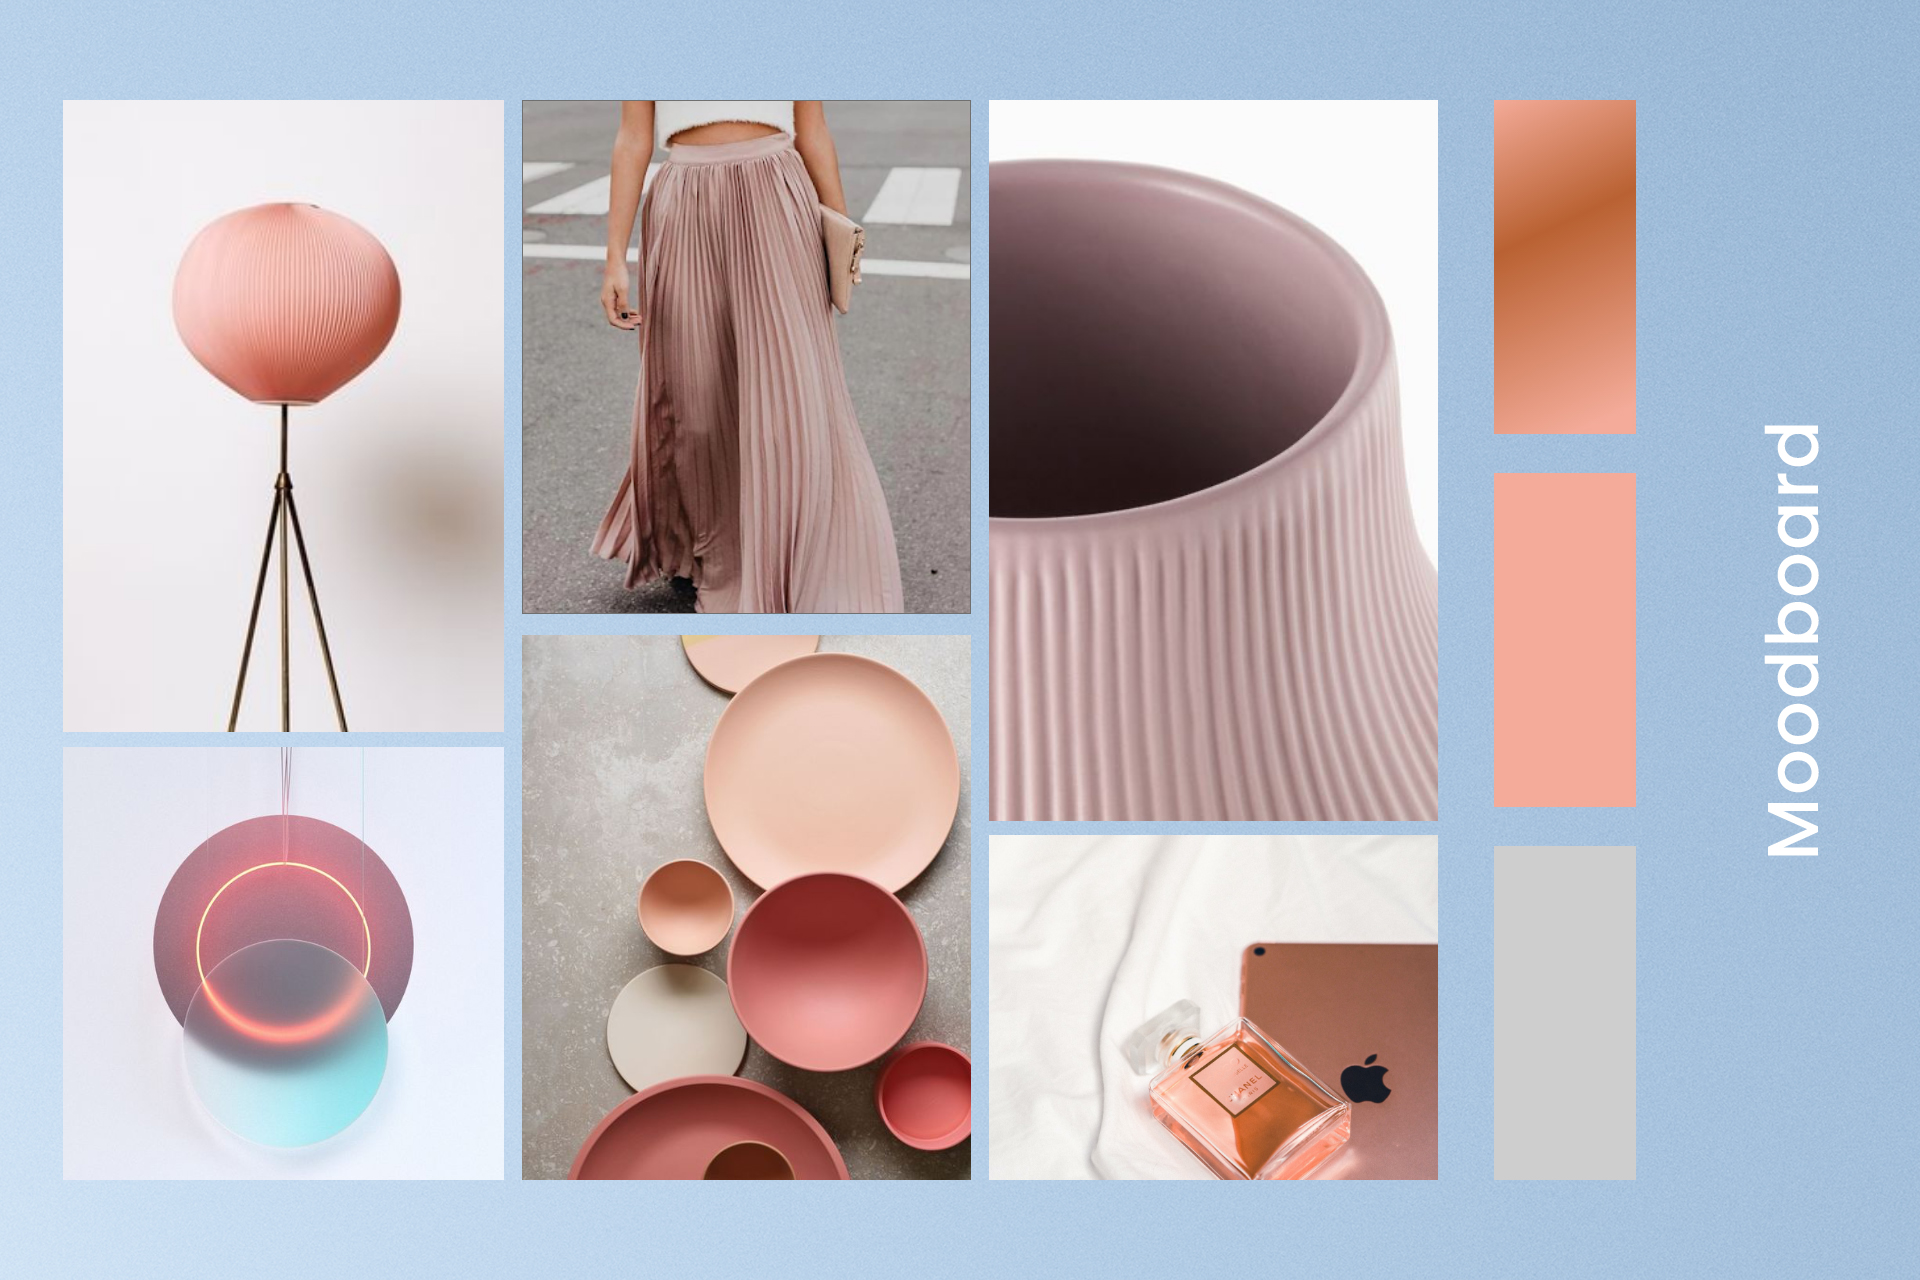 Moodboard that inspired the design